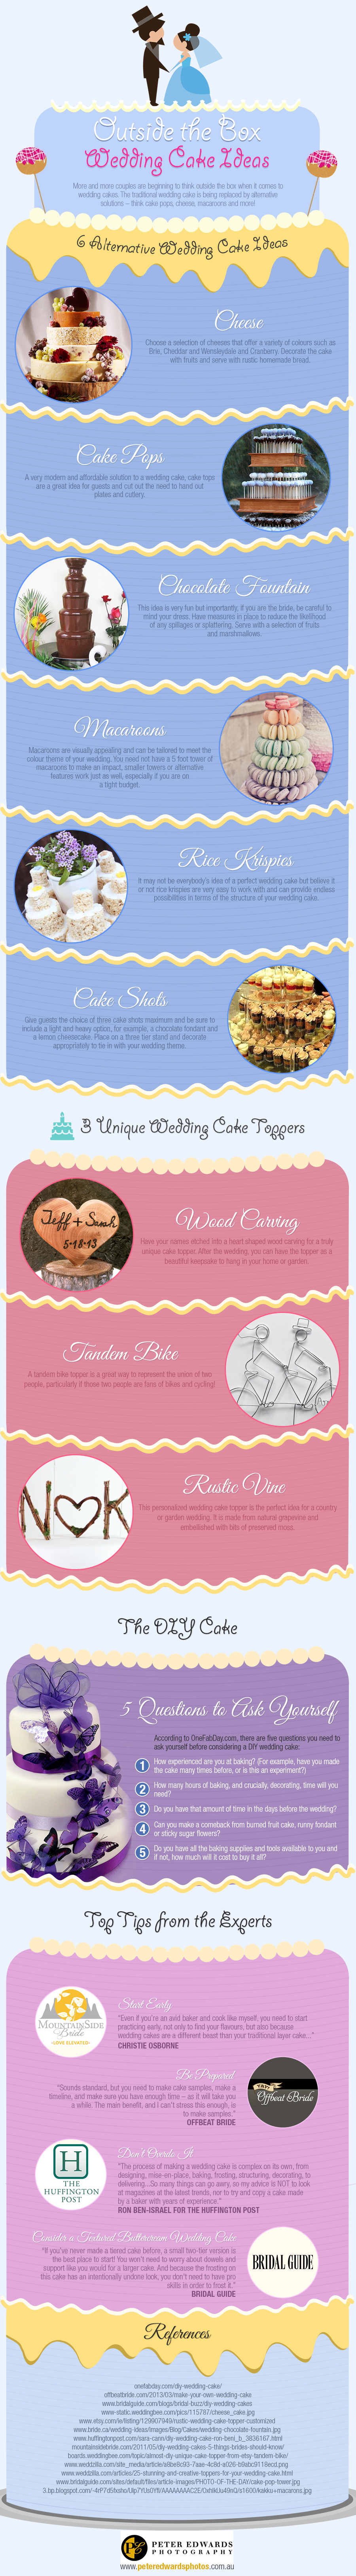 Outside the Box Wedding Cake Ideas Infographic